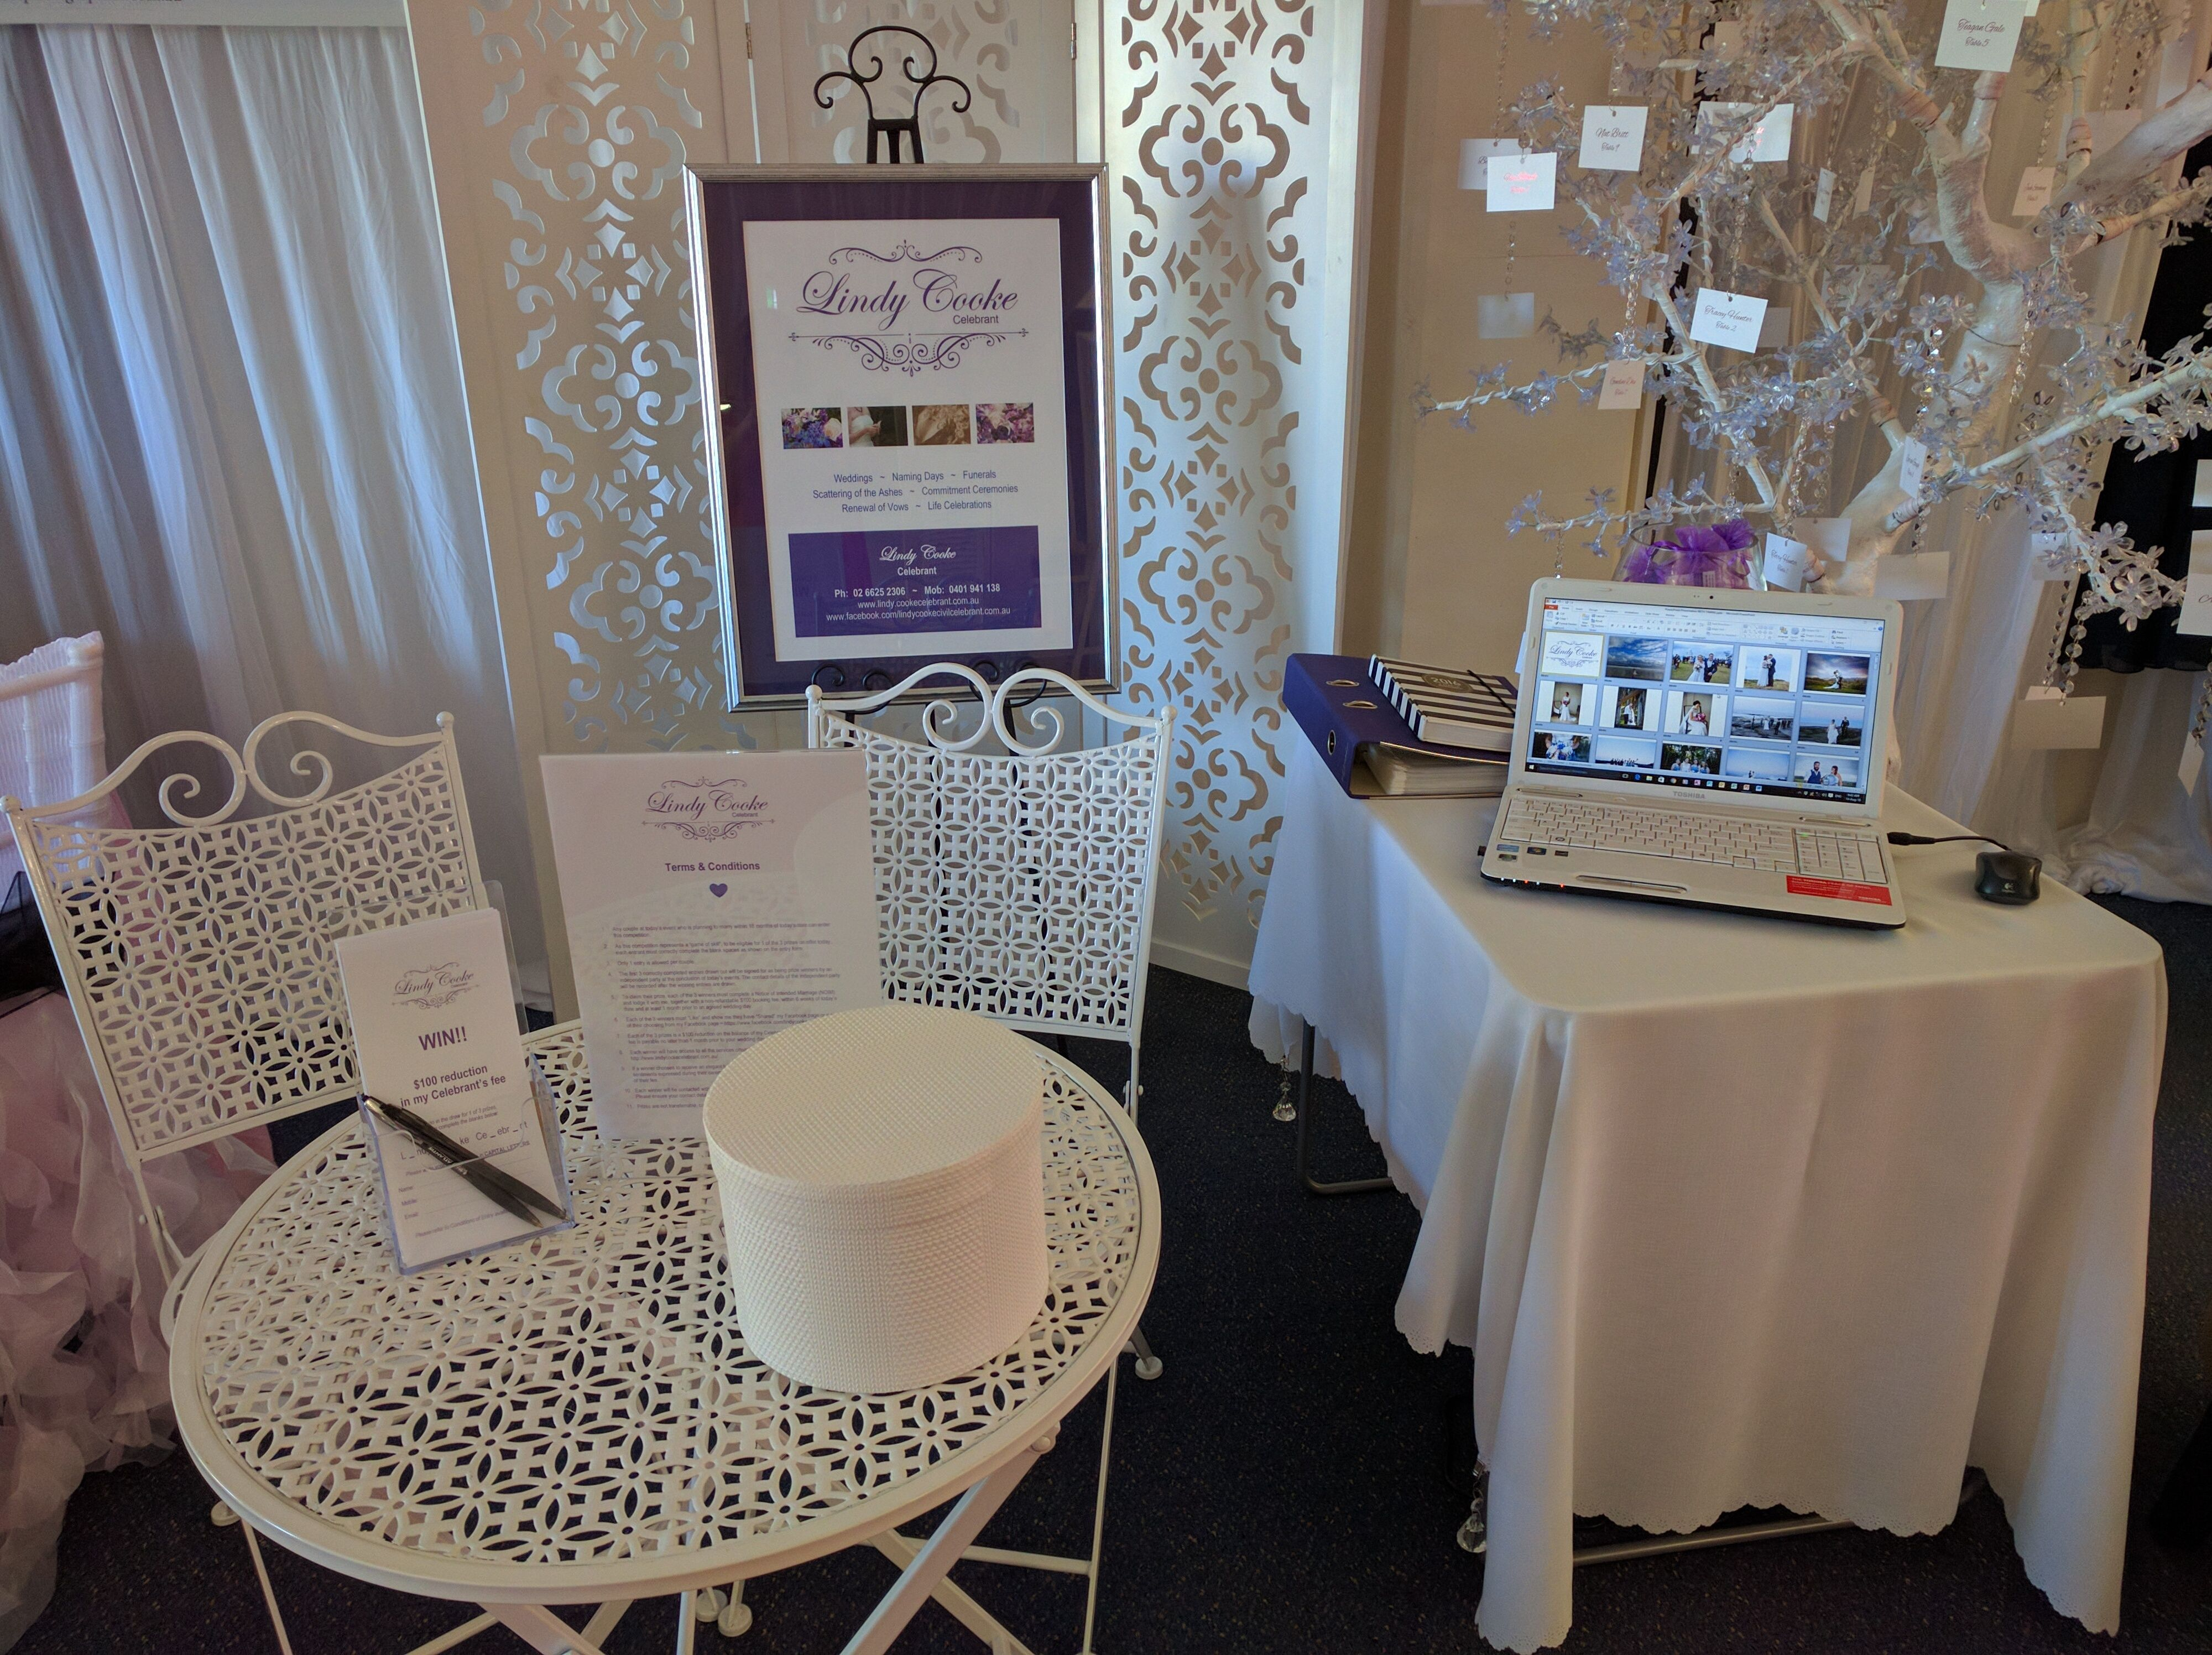 My exhibit at the Bridal Network Open Day 14.8.16